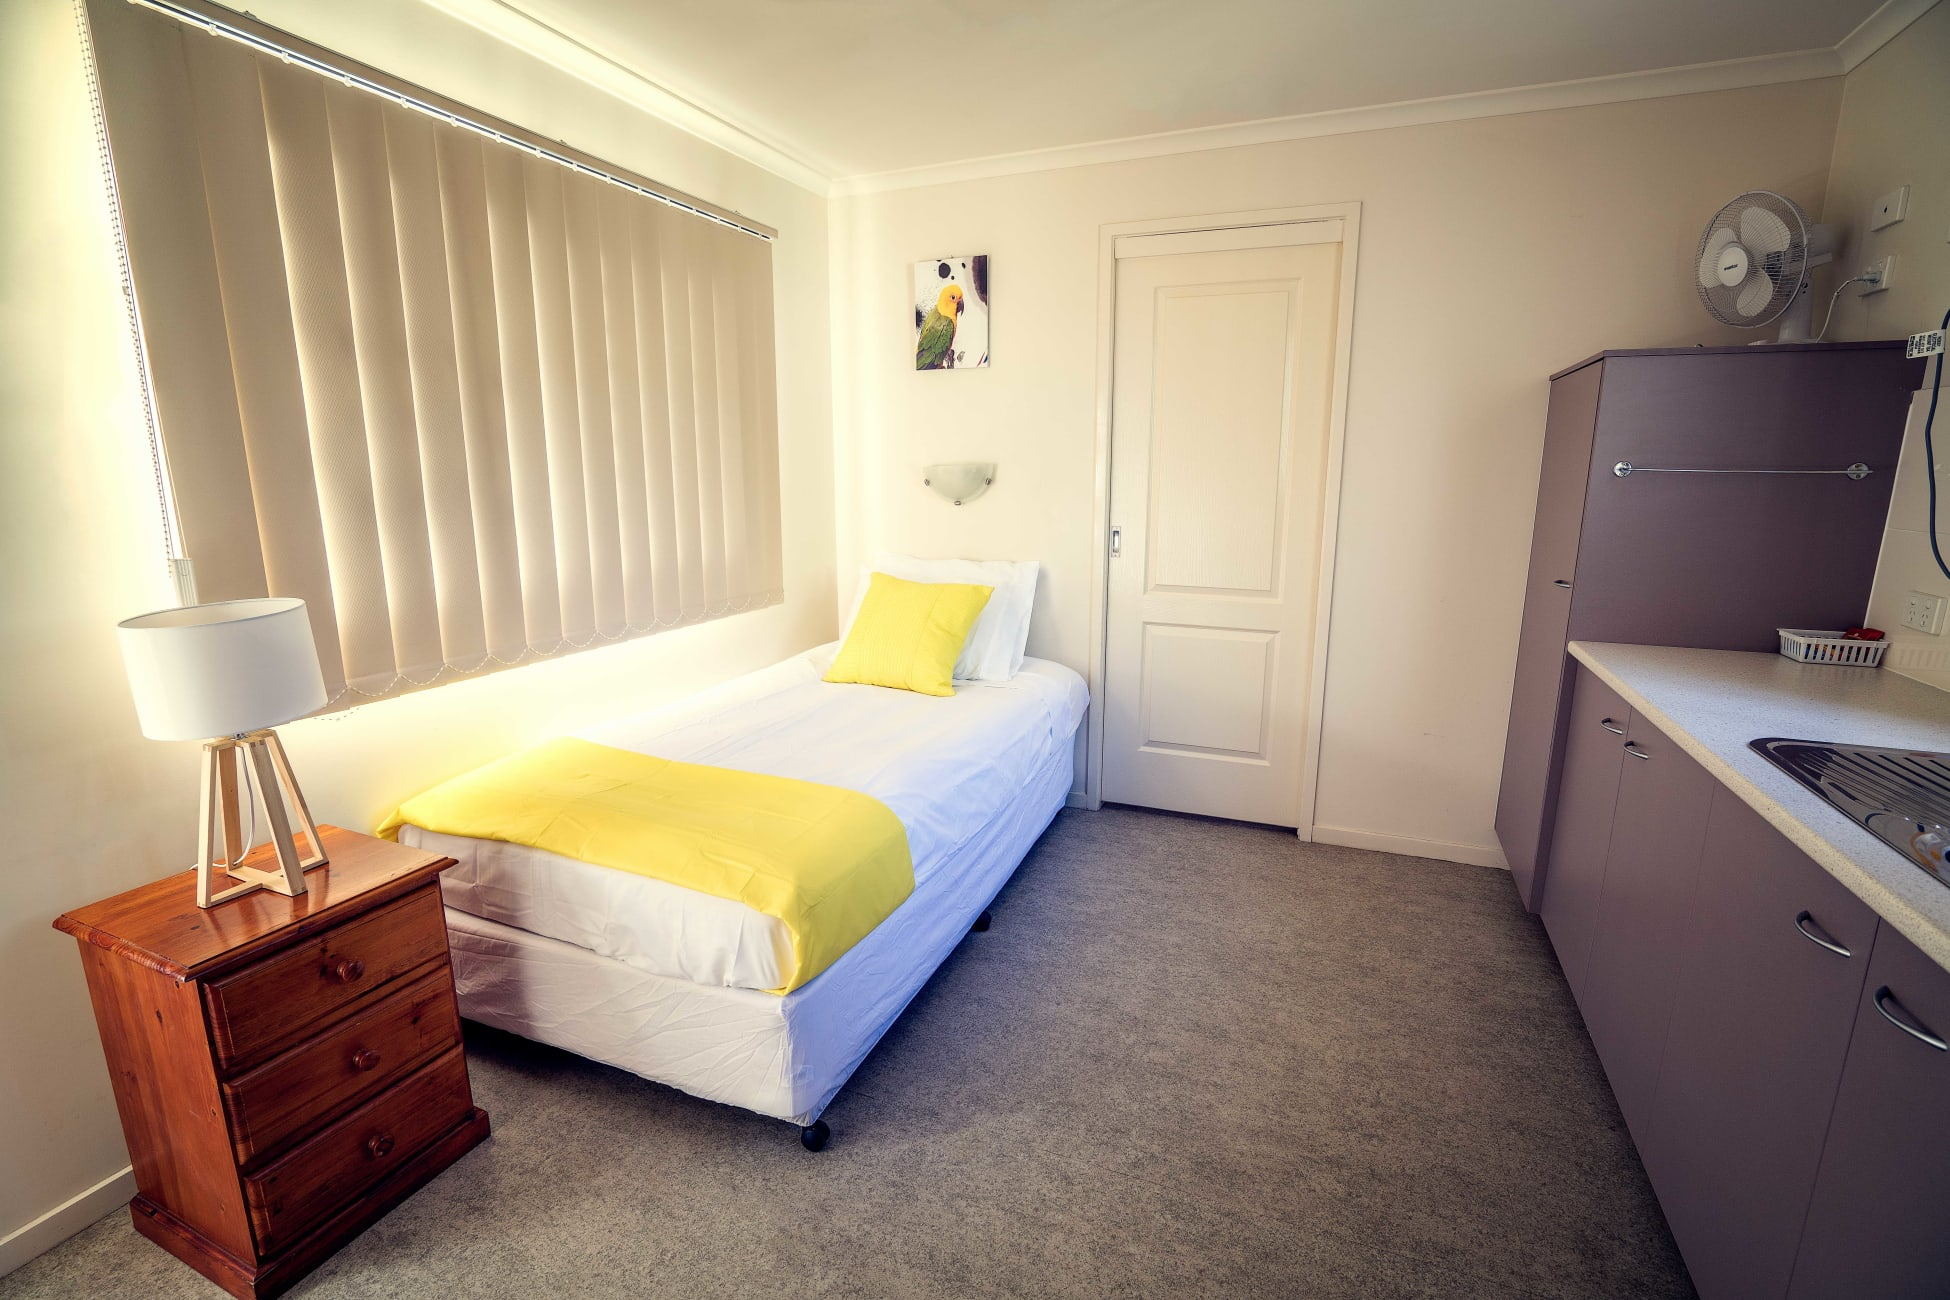 Factors To Consider Prior To Booking An Accommodation In Mt Isa, Qld